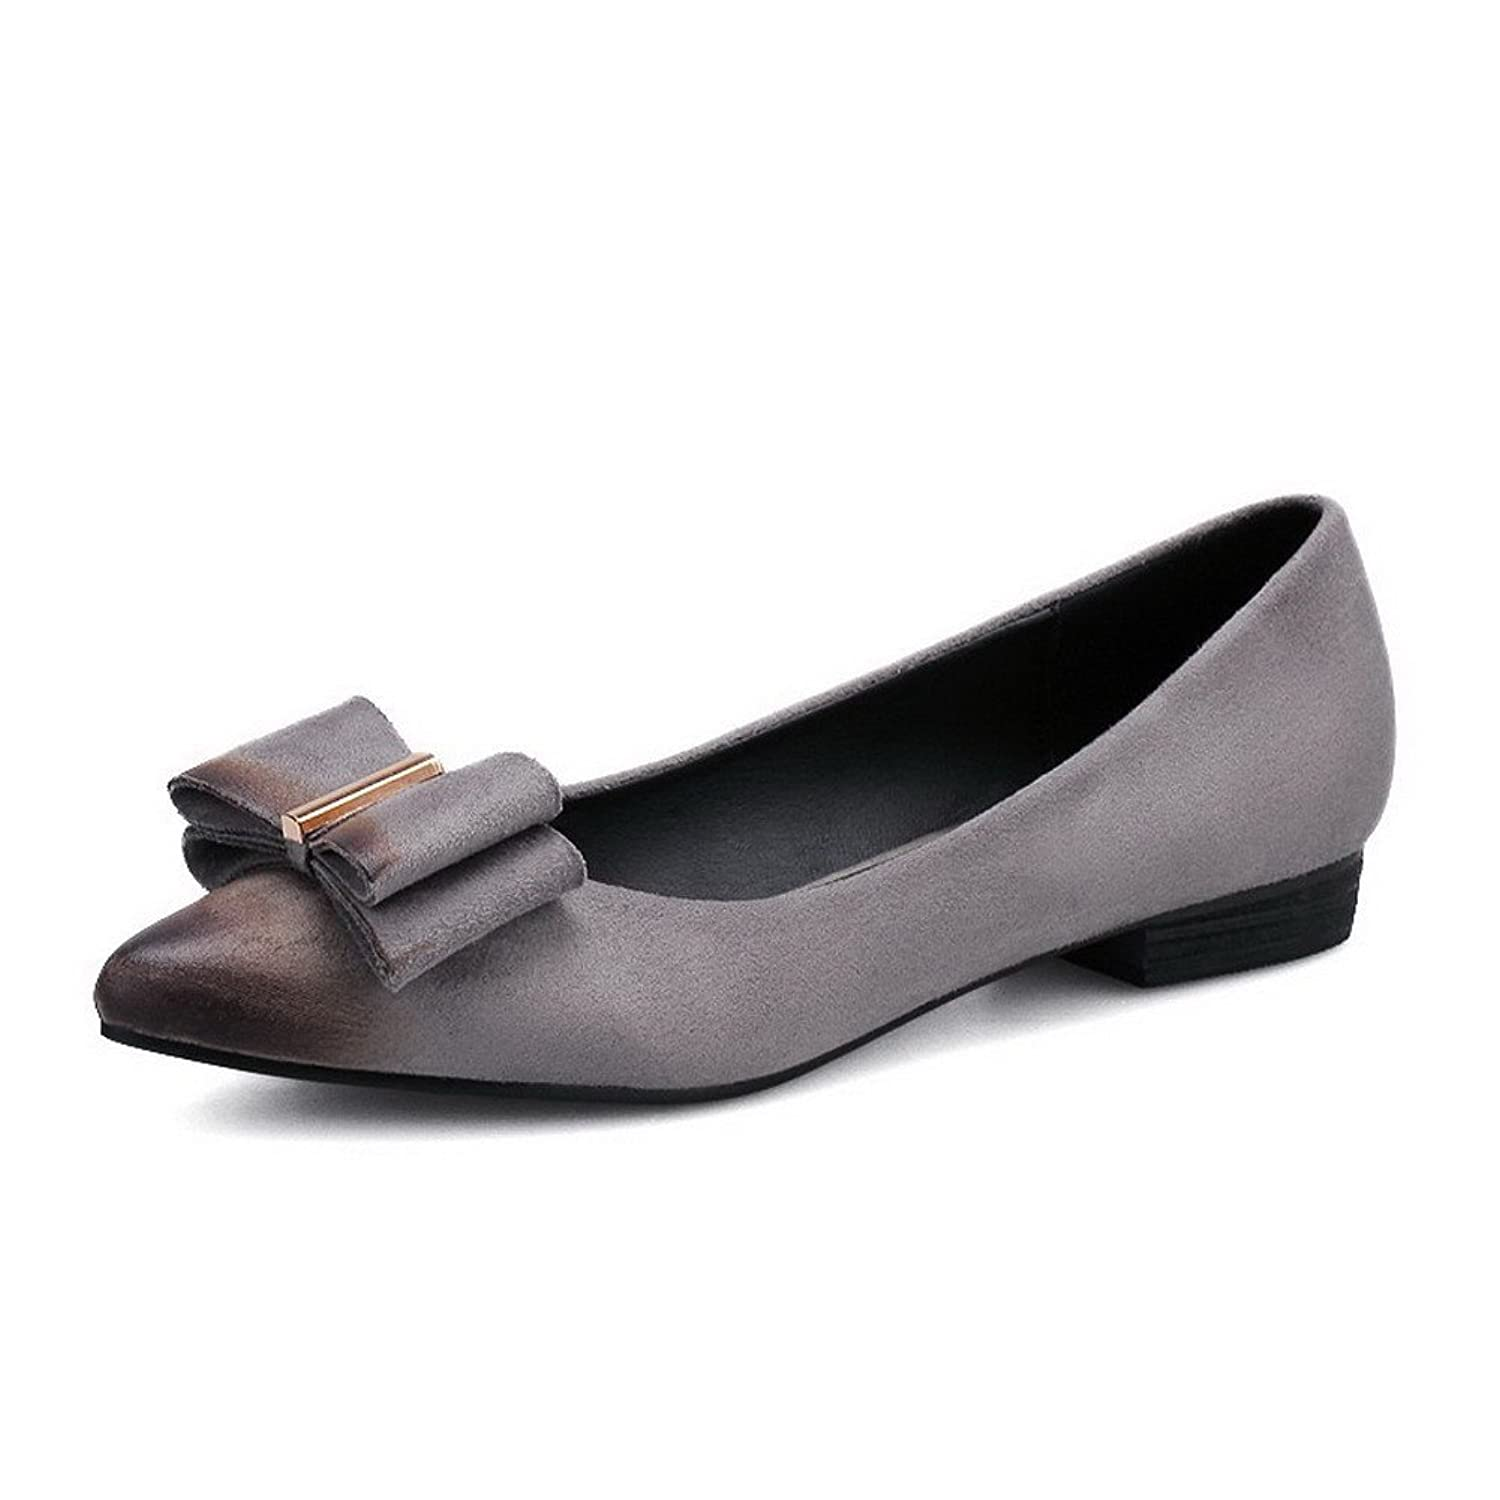 AalarDom Women's Pointed Closed Toe Imitated Suede Pull-On No-Heel Flats-Shoes with Bowknot